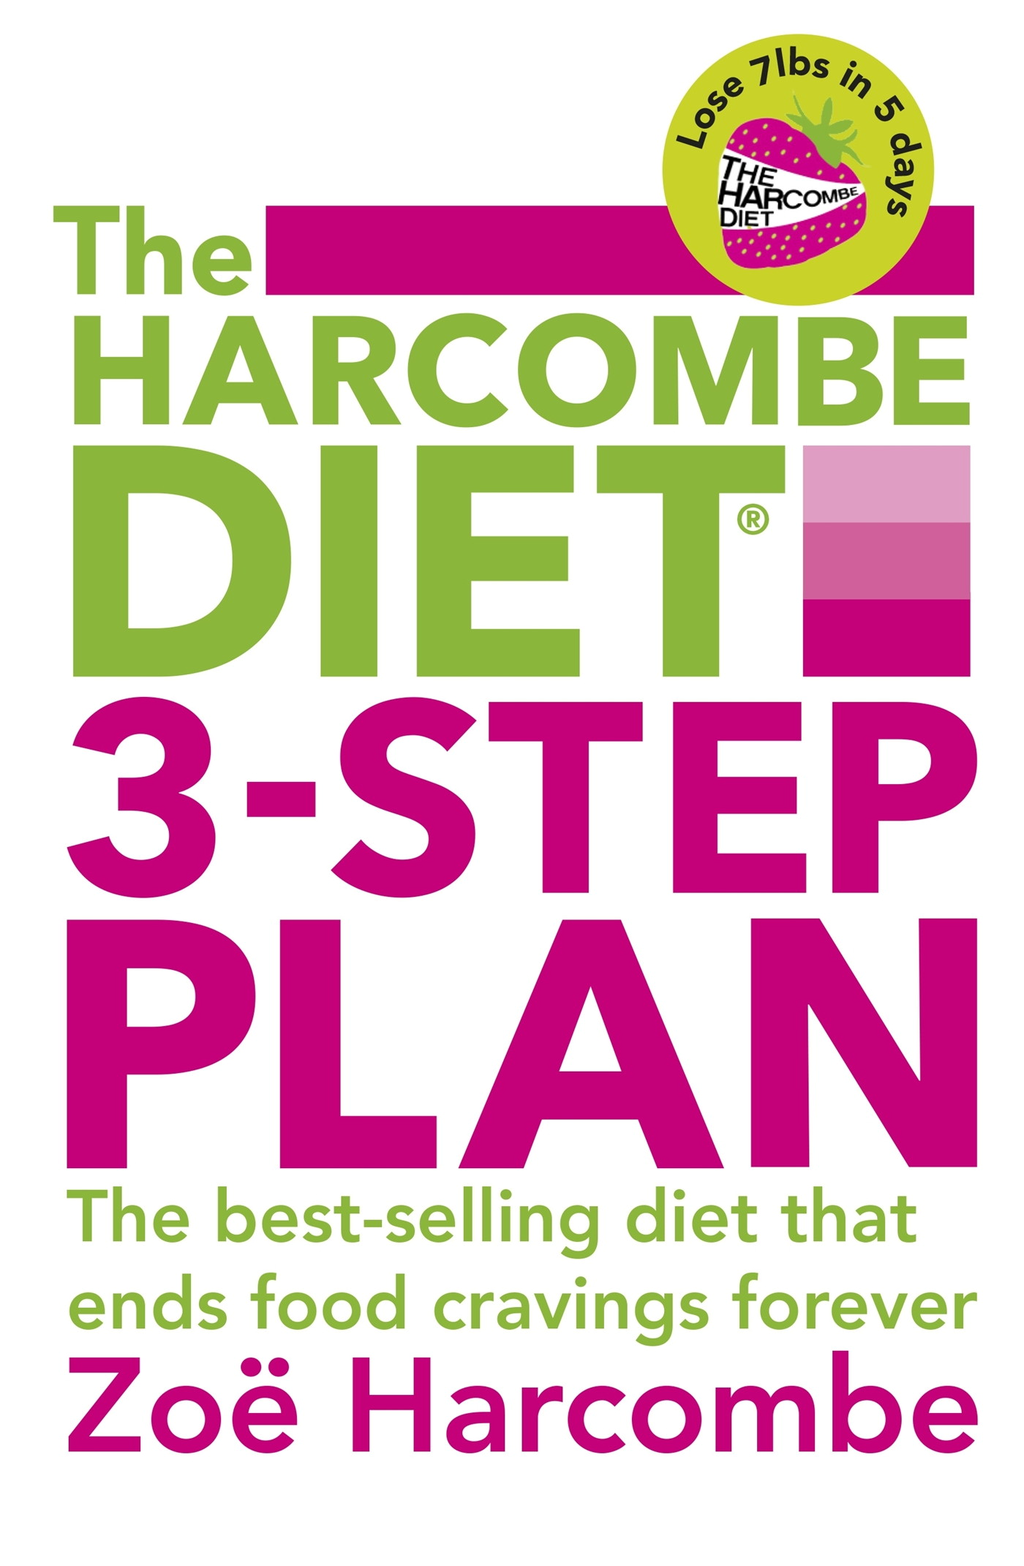 The Harcombe Diet 3-Step Plan Lose 7lbs in 5 days and end food cravings forever